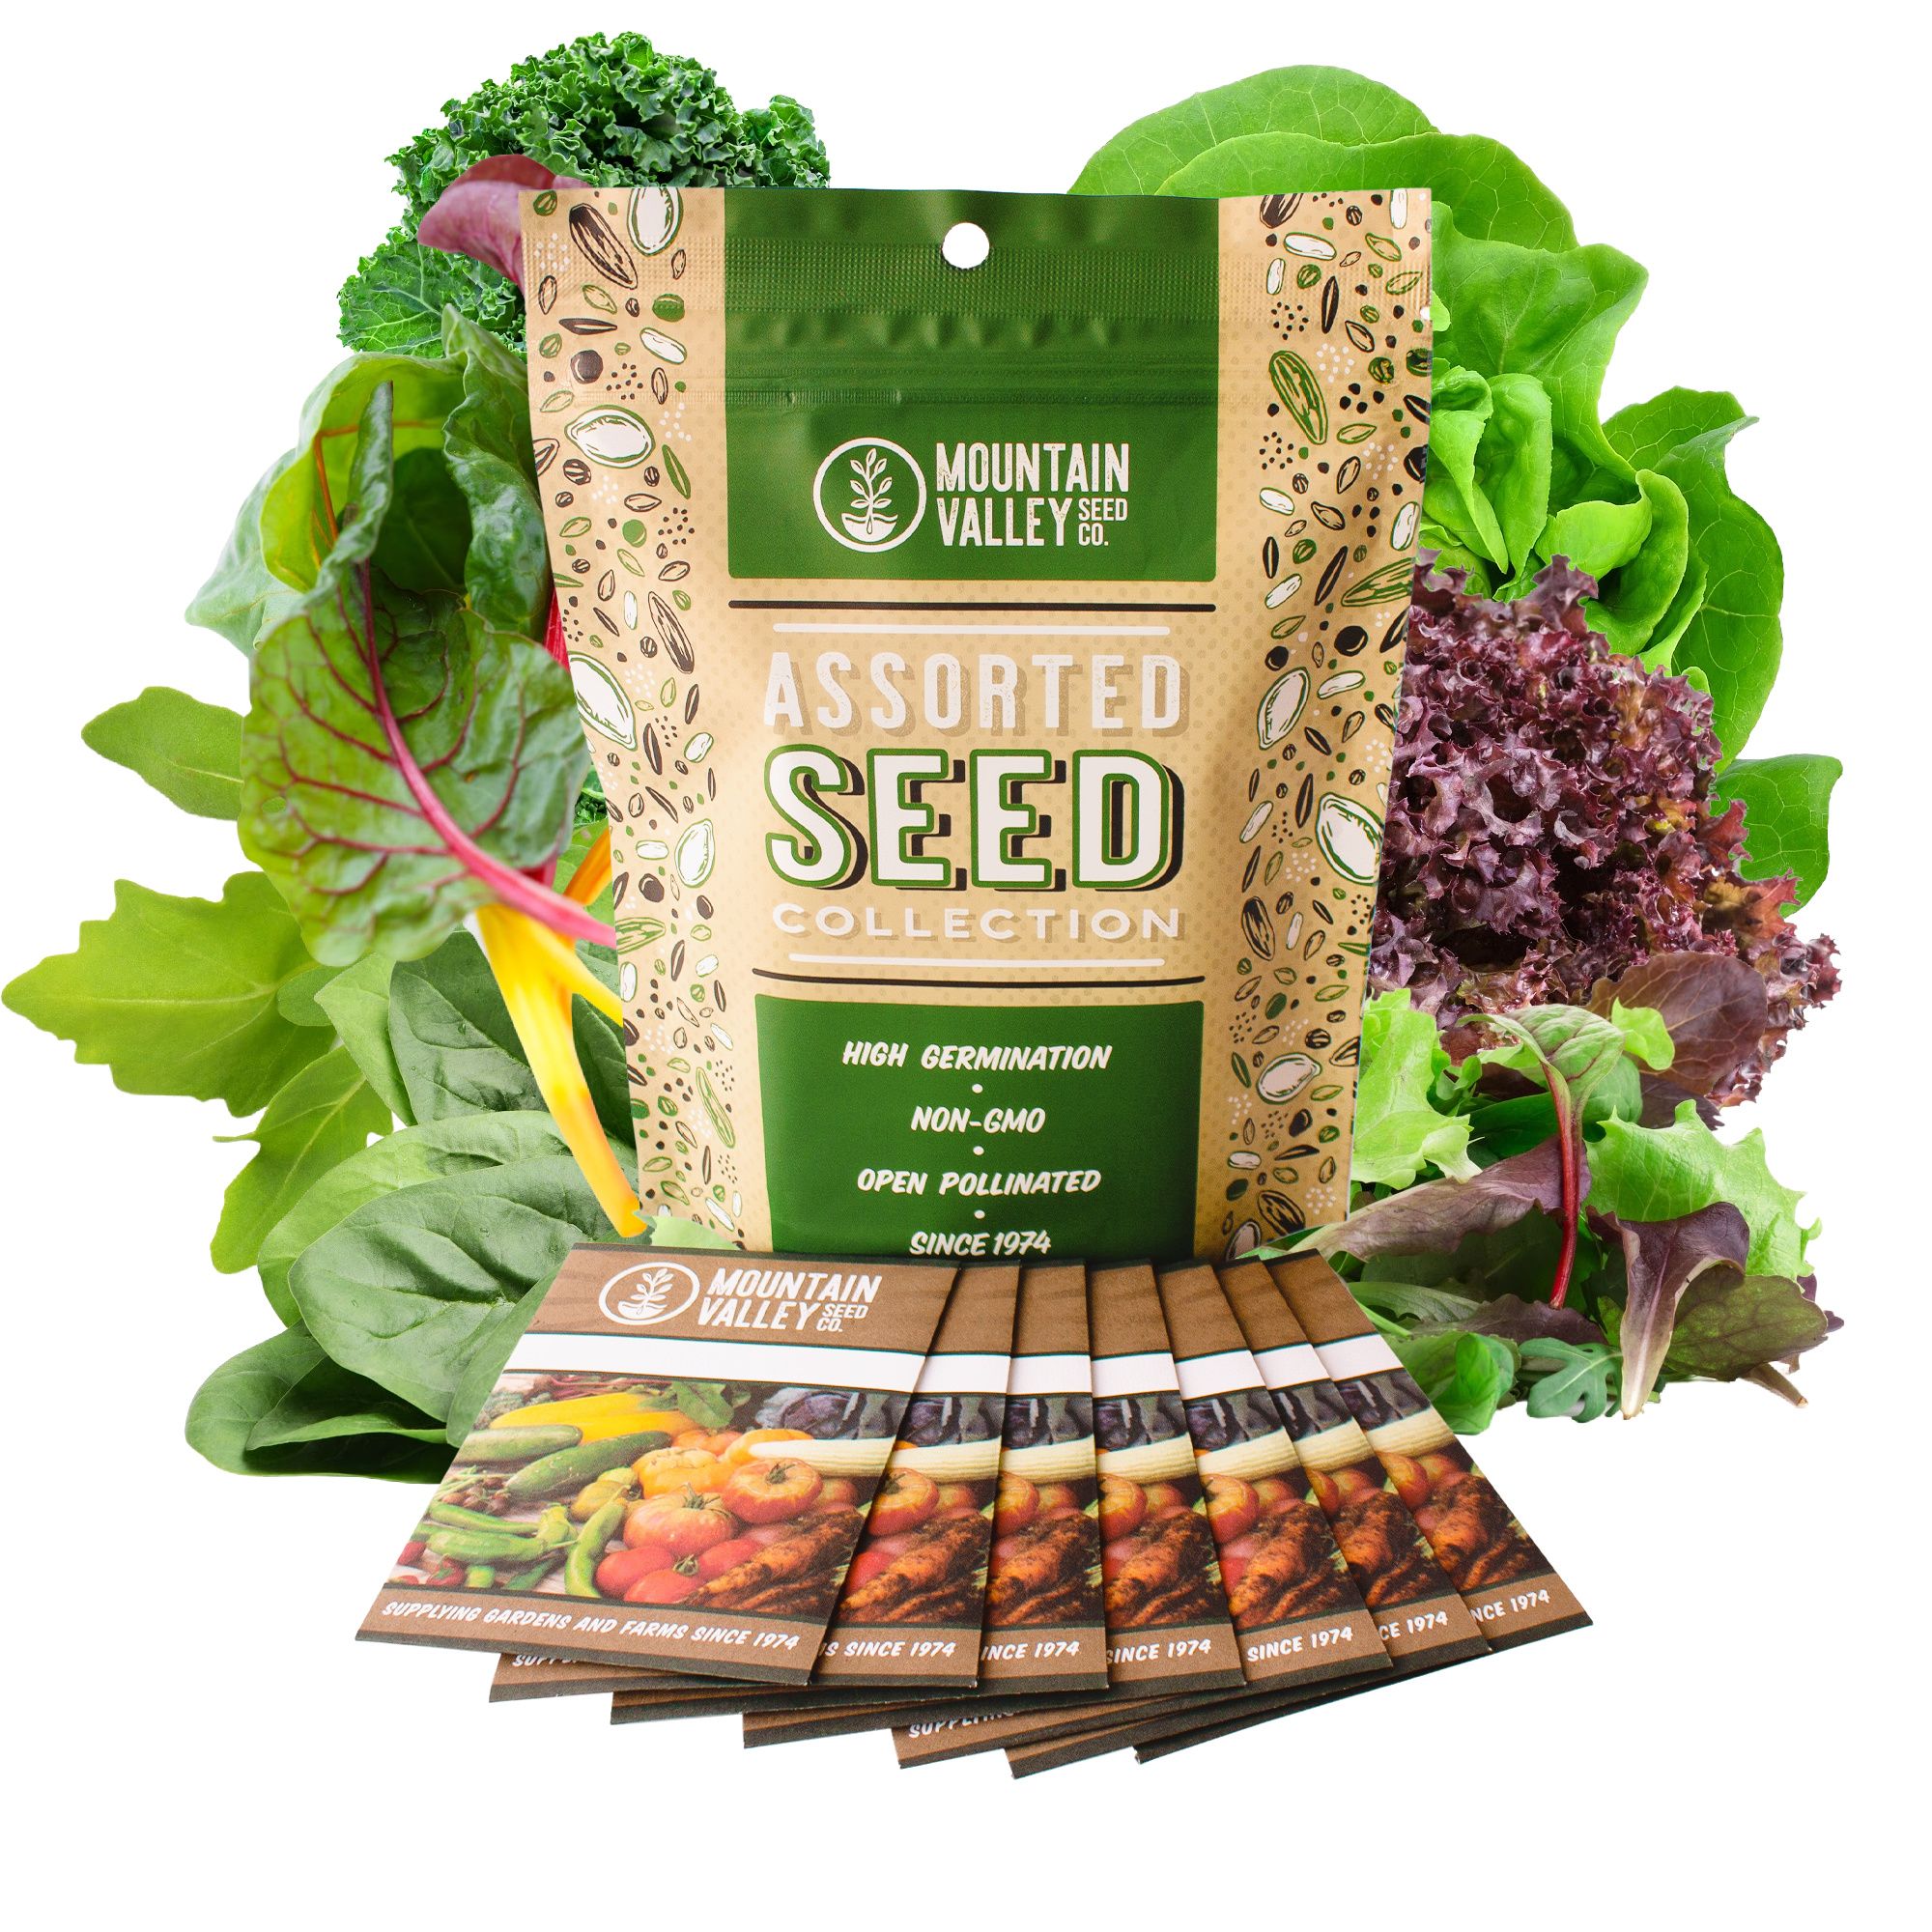 Conventional Leafy 7 Greens Seed Assortment